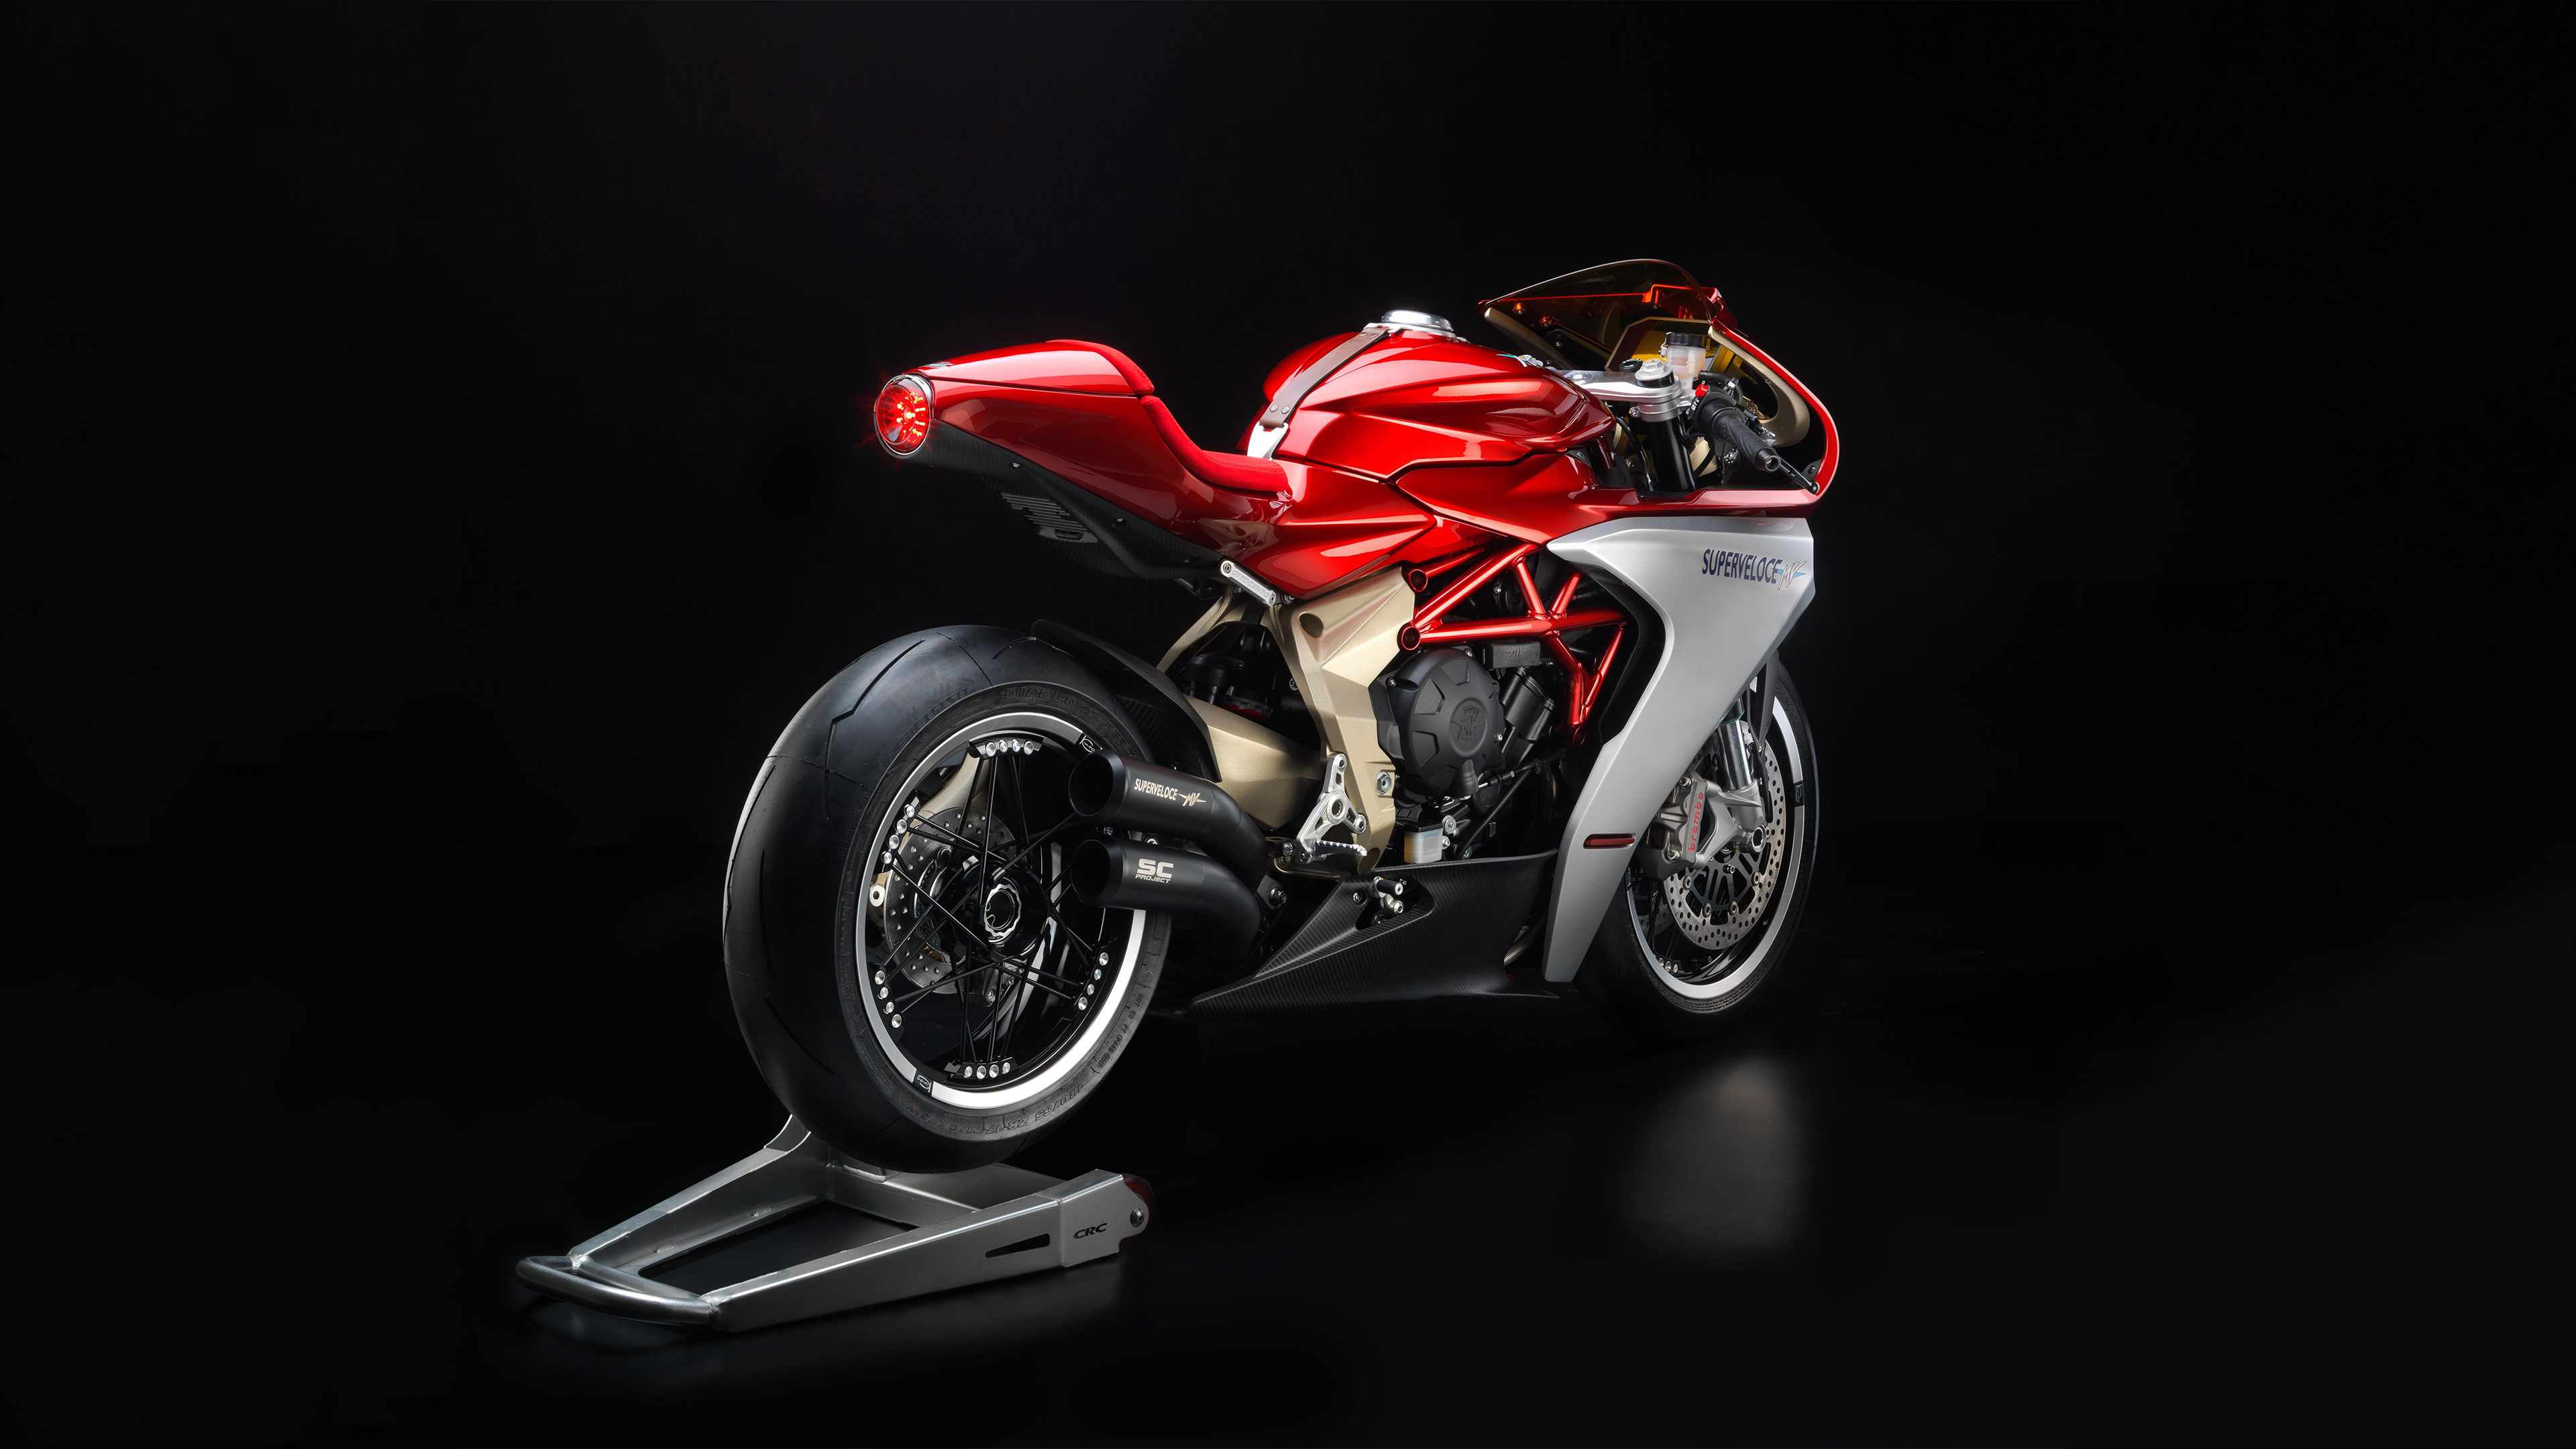 MV Agusta Superveloce 800 4k, HD Bikes, 4k Wallpapers